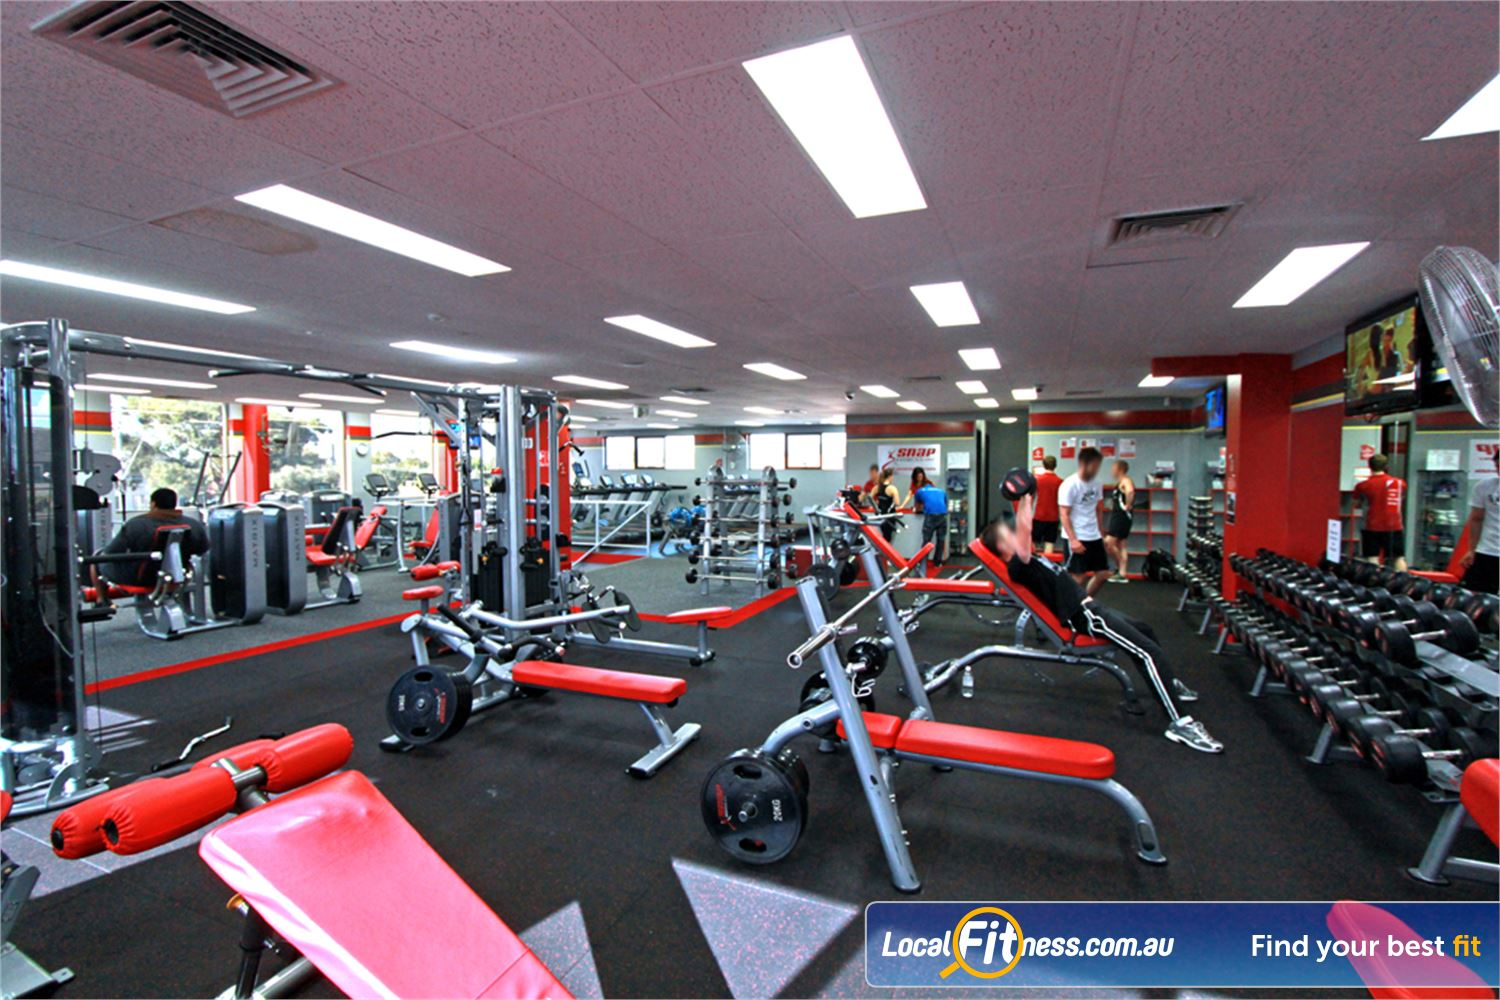 Snap Fitness Near Kilsyth Convenient gym access day or night.